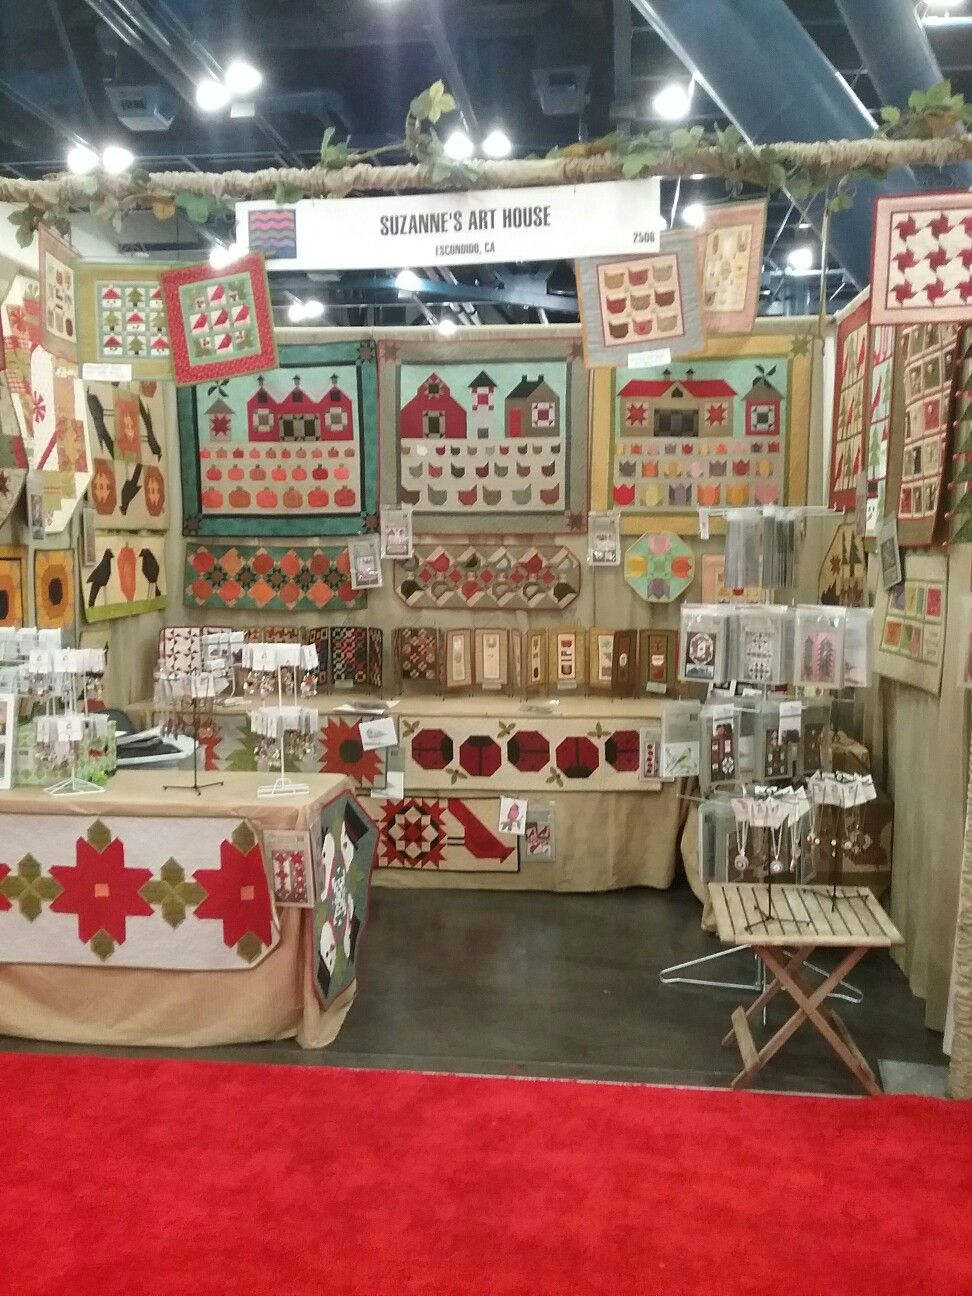 Suzanne's Art House booth at Fall Houston market 2016